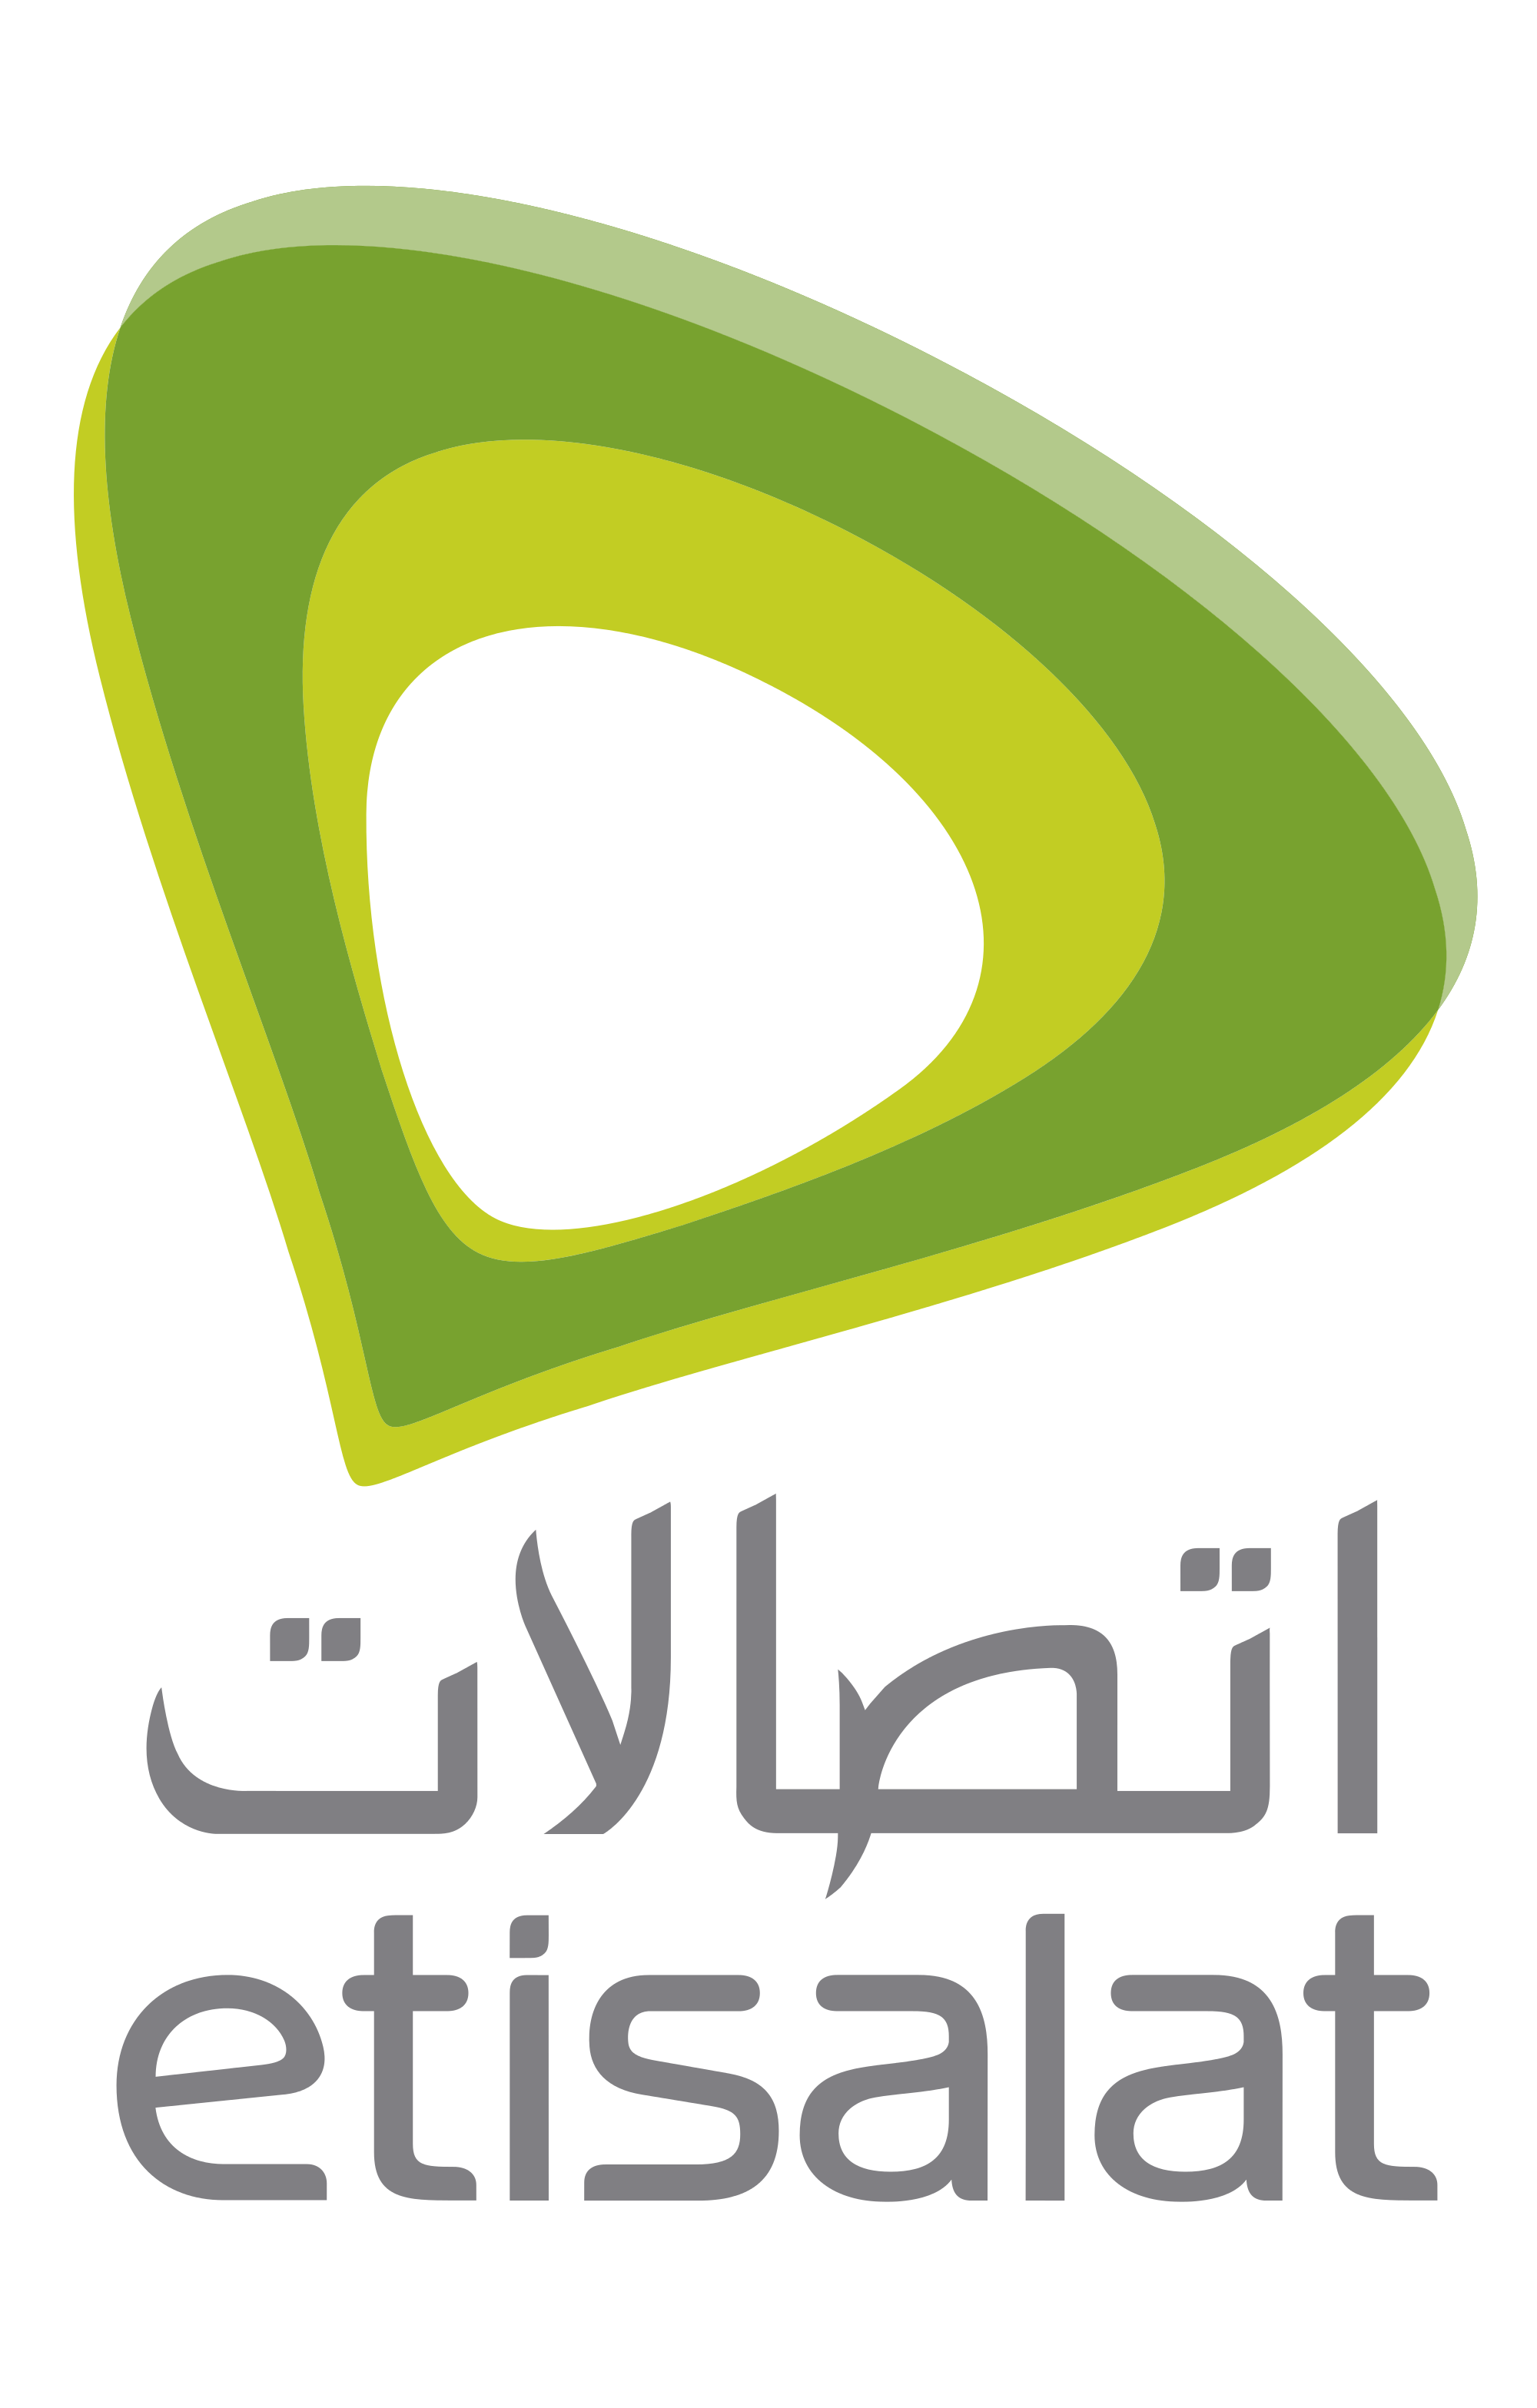 30. Etisalat Group